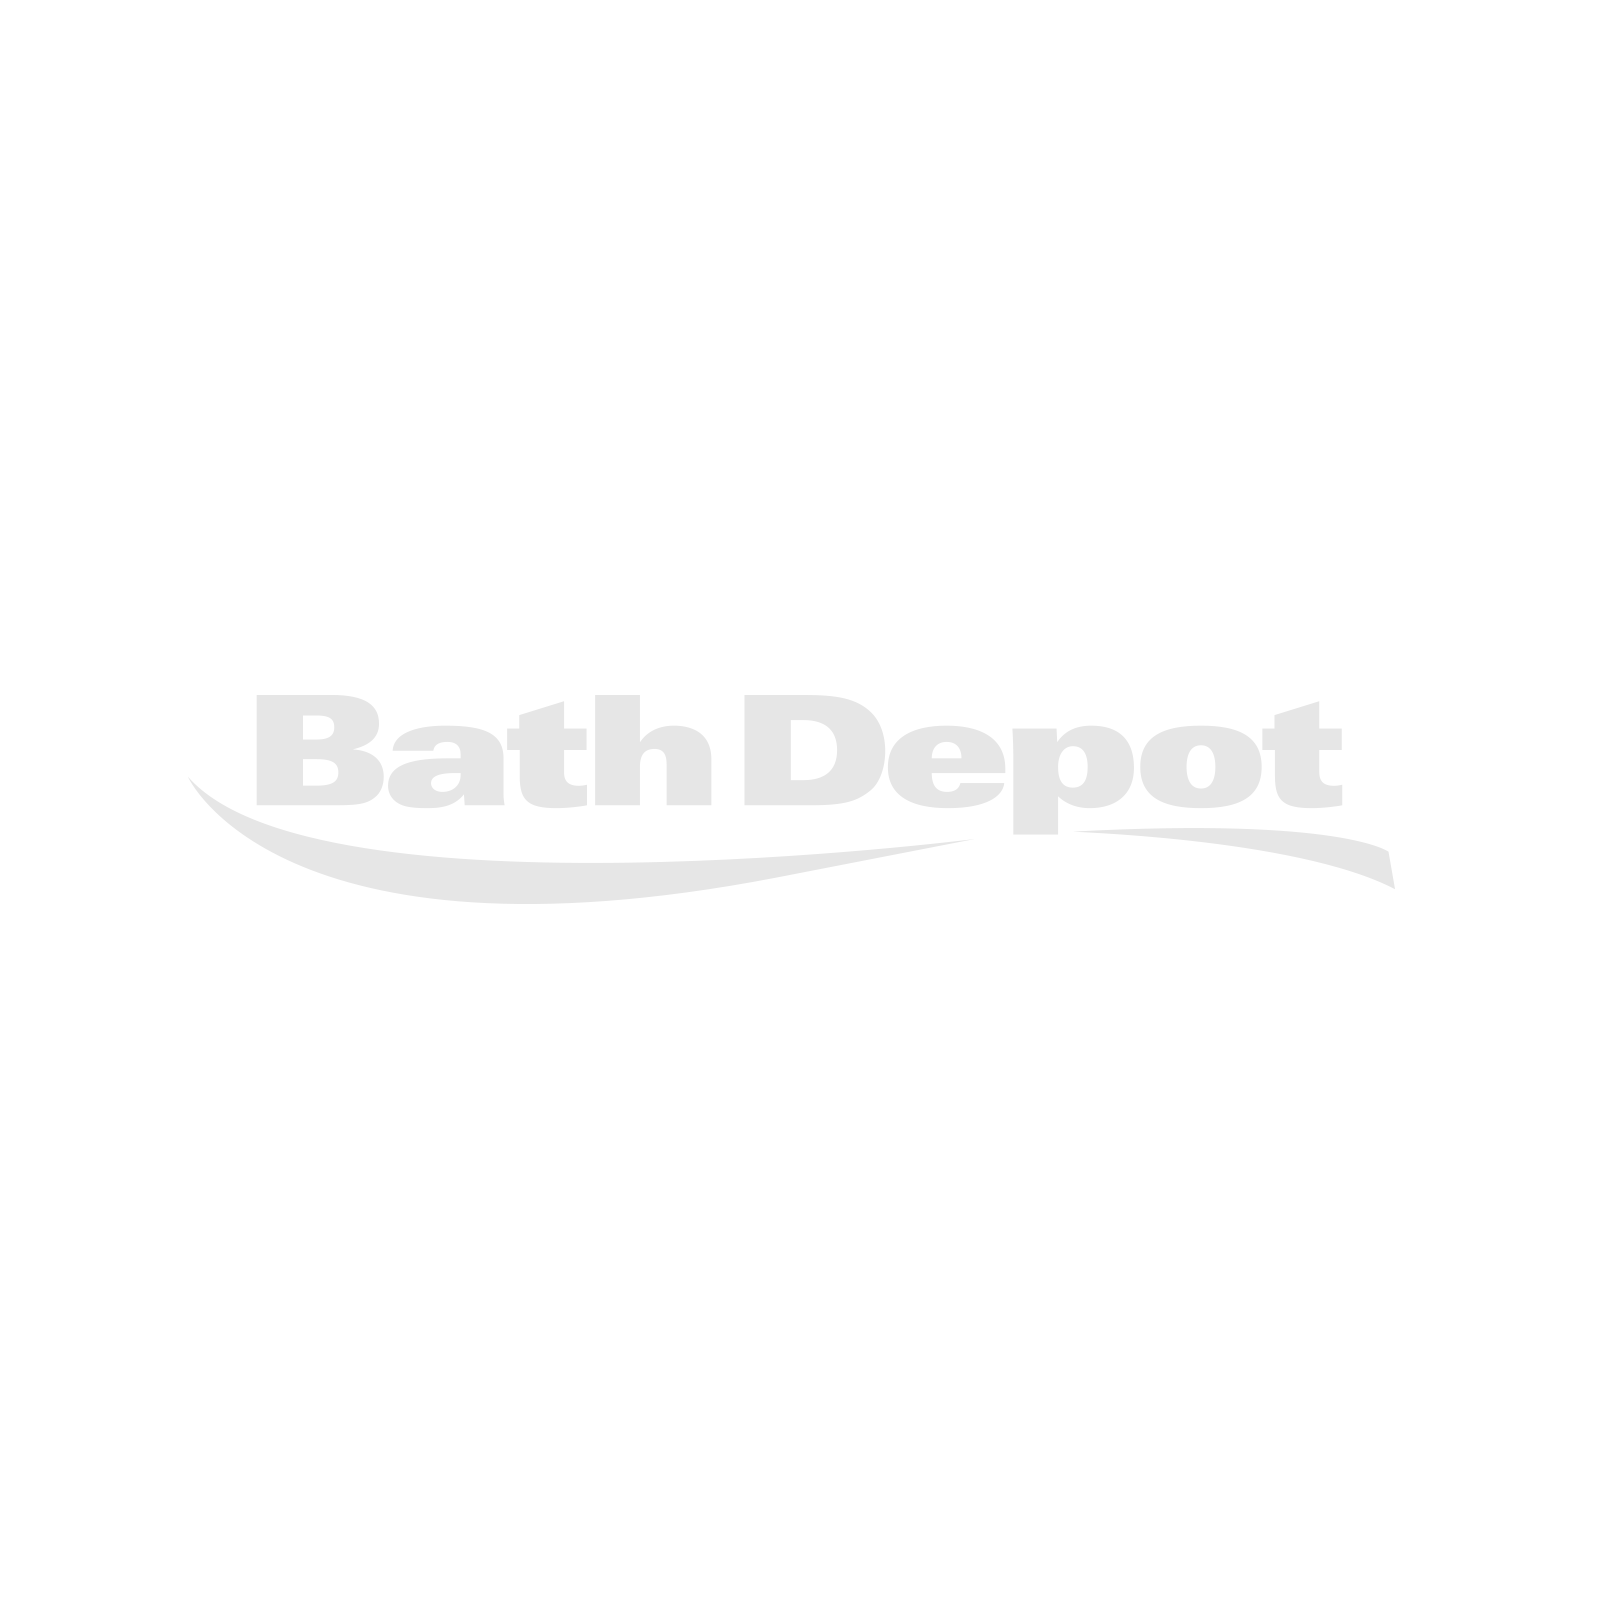 Bathroom category product